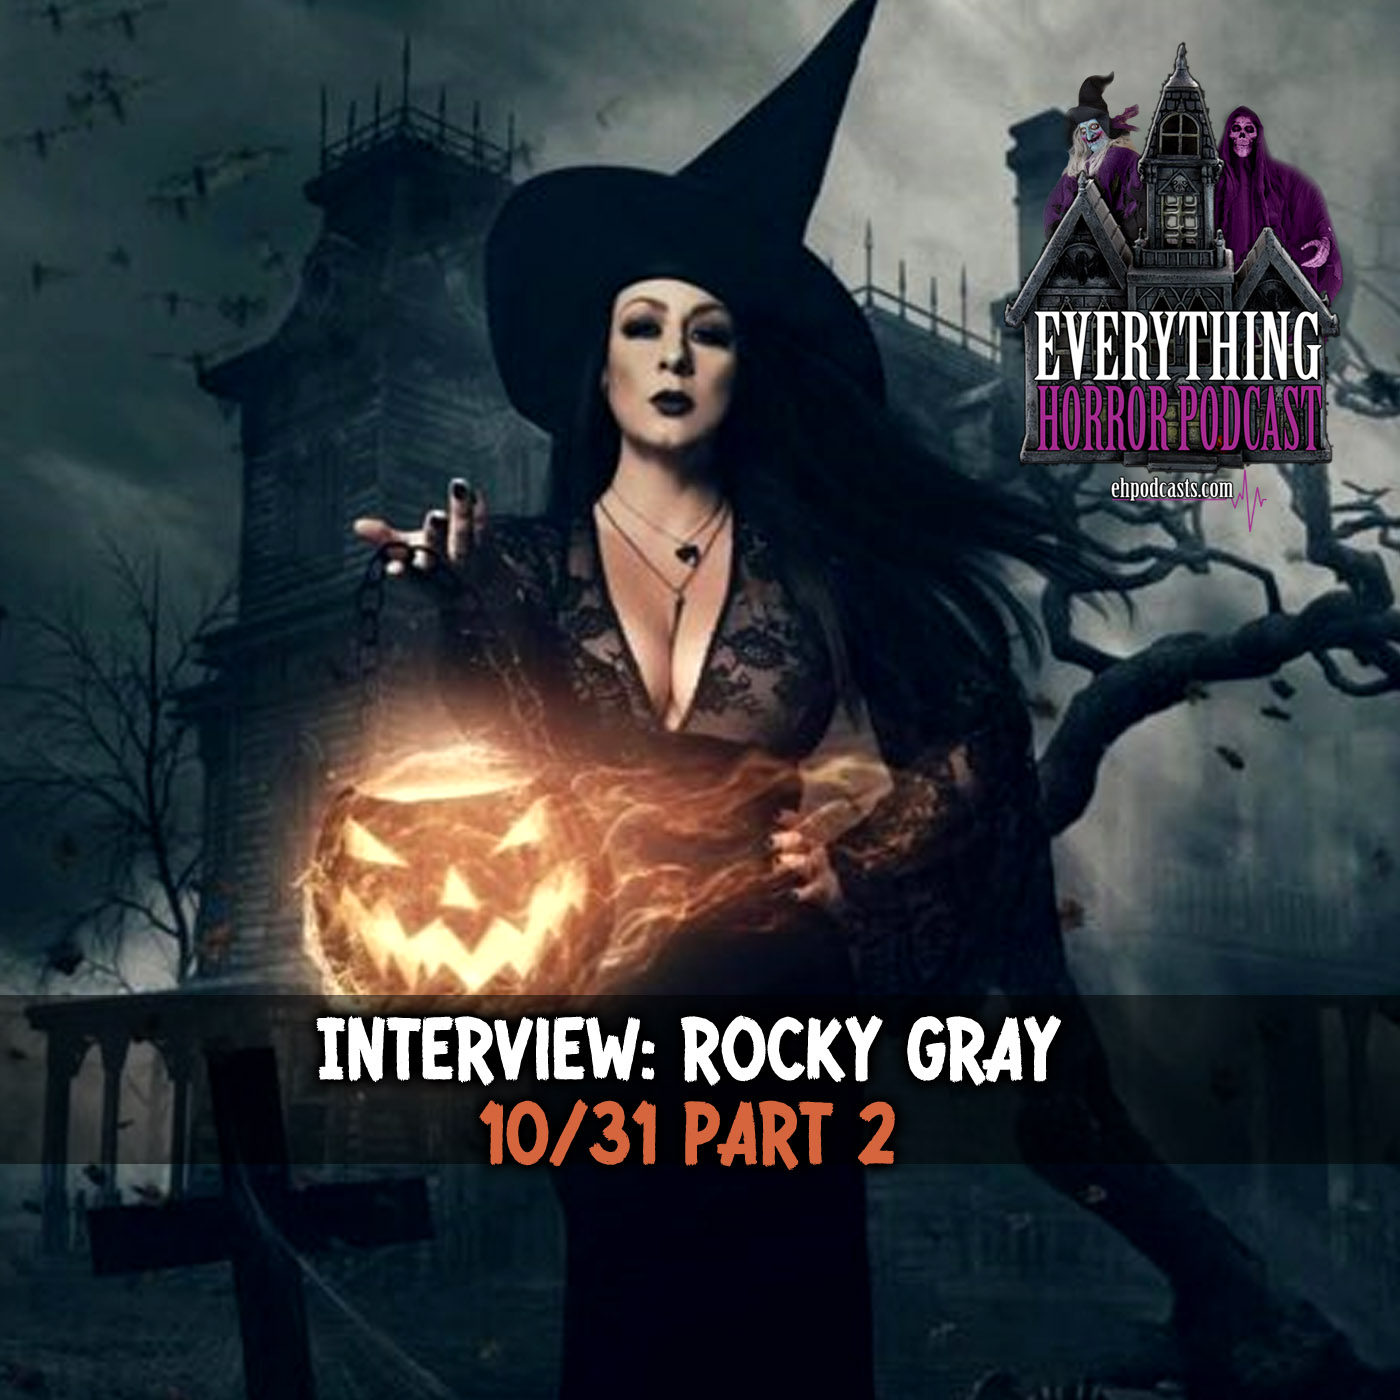 Interview: Rocky Gray | 10/31 Part 2